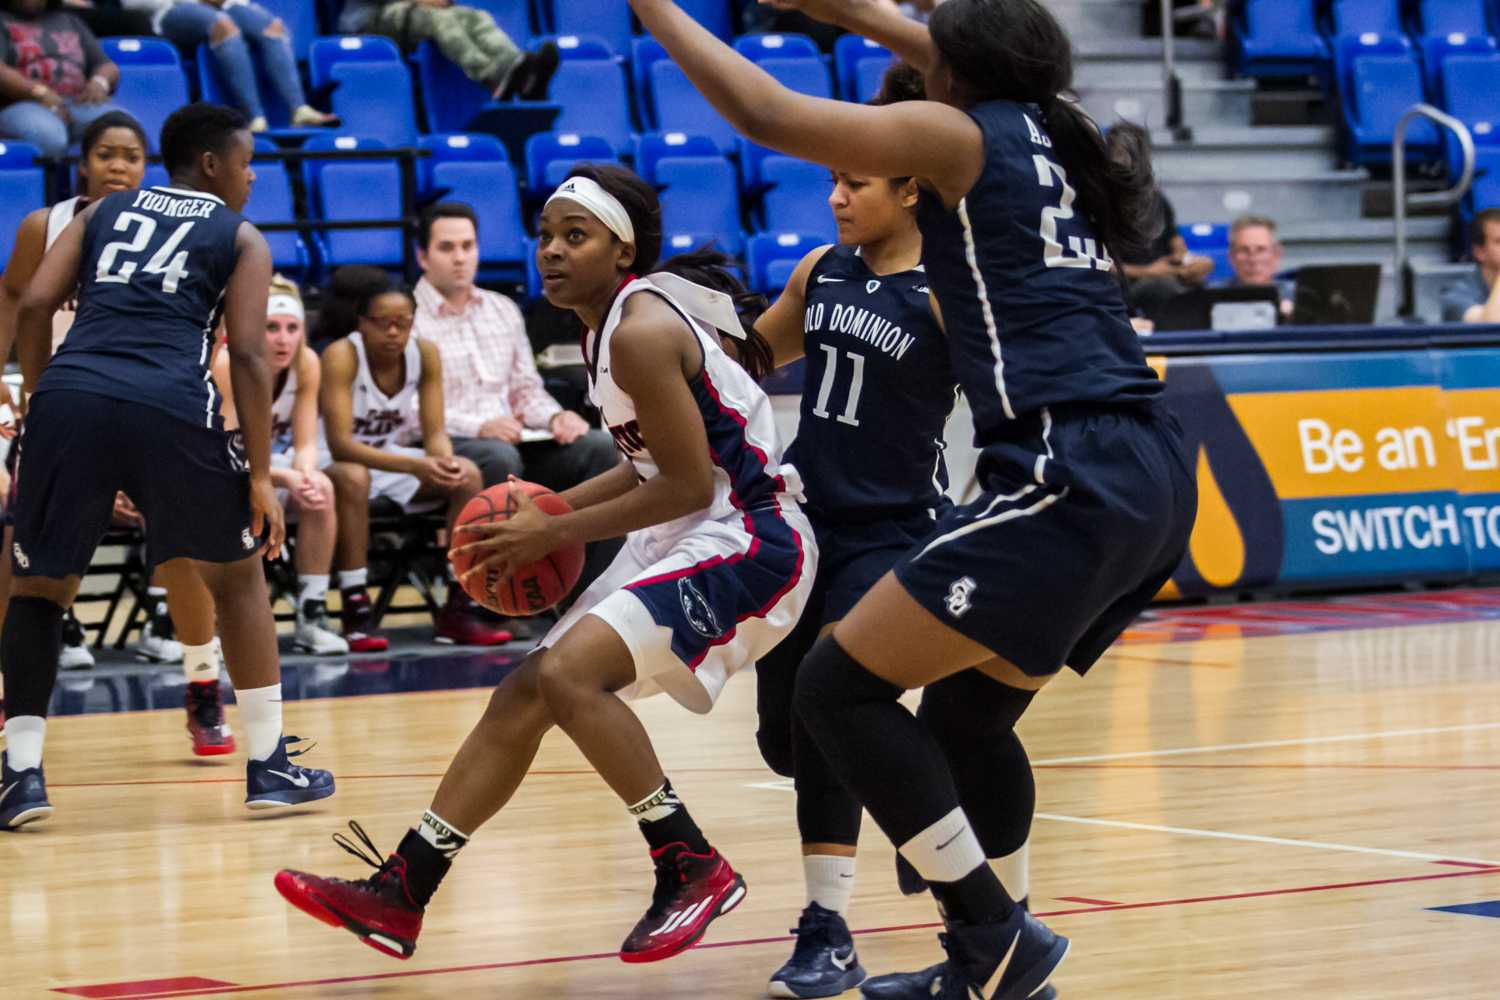 FAU guard Aaliyah Dotson comes to a stop before taking a shot.